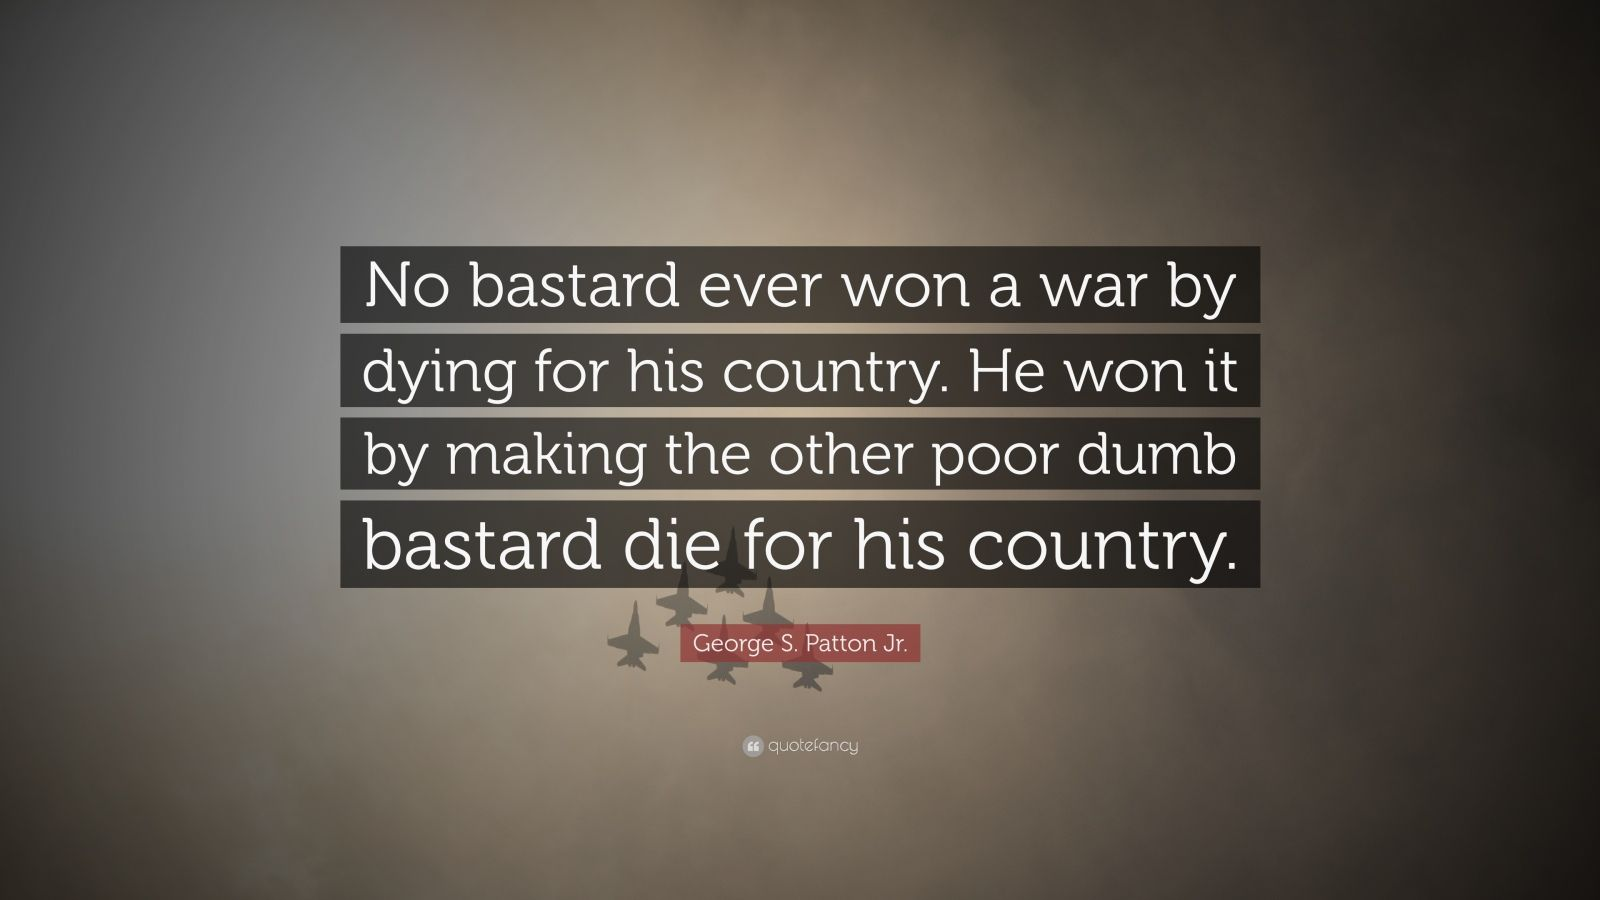 """George S. Patton Jr. Quote: """"No bastard ever won a war by dying for his country. He won it by making the other poor dumb bastard die for his country."""""""